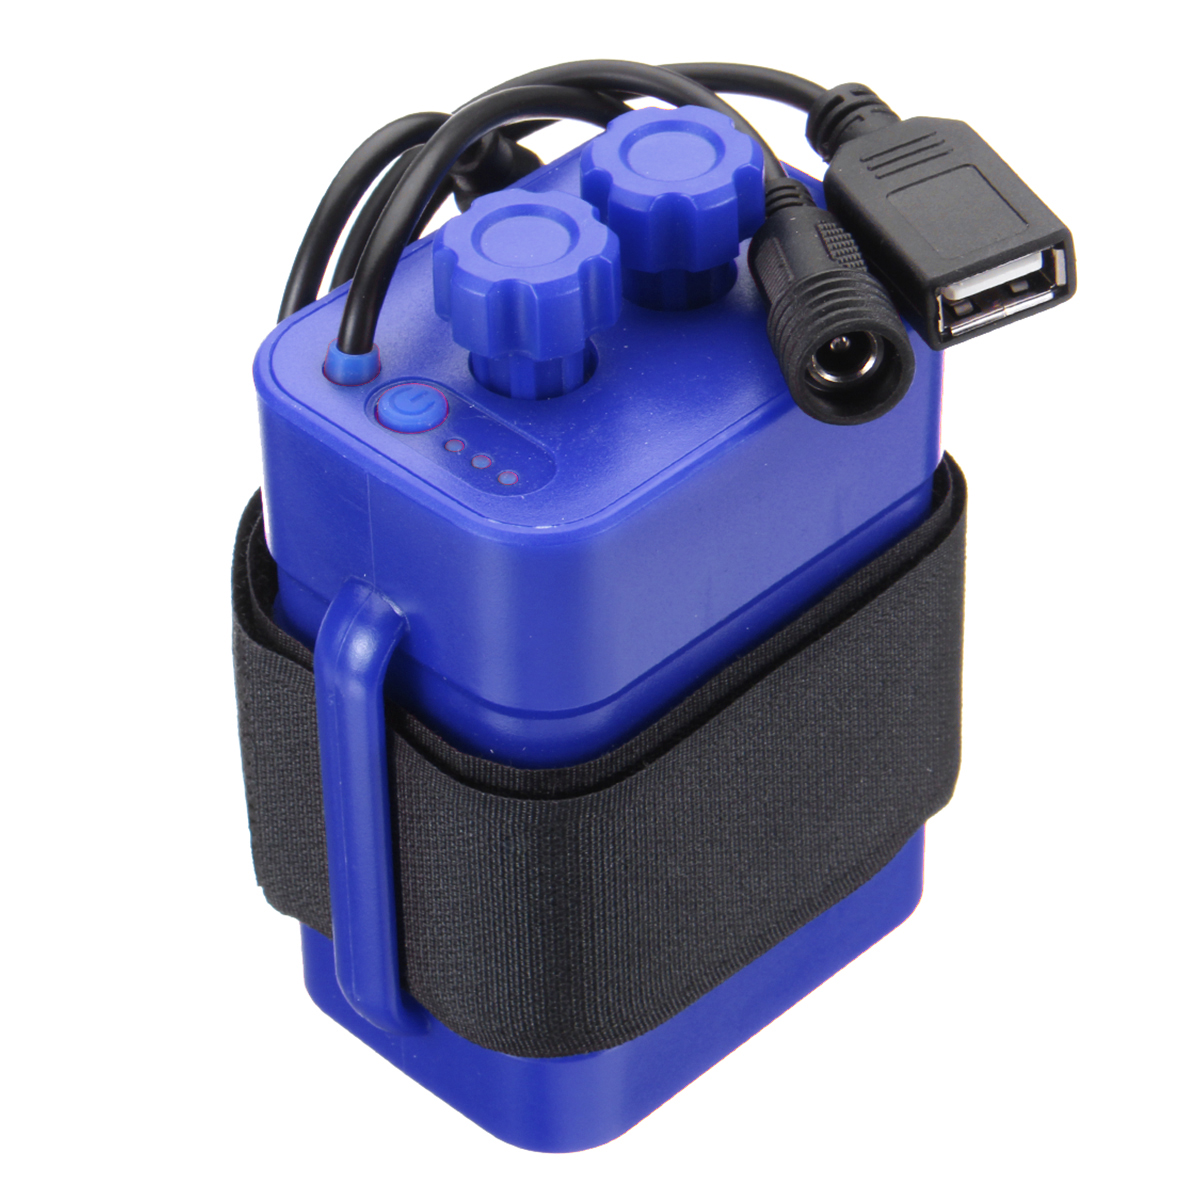 8.4V 6X 18650 Waterproof Battery Pack Case House Cover For Bicycle Bike Lamp DMG